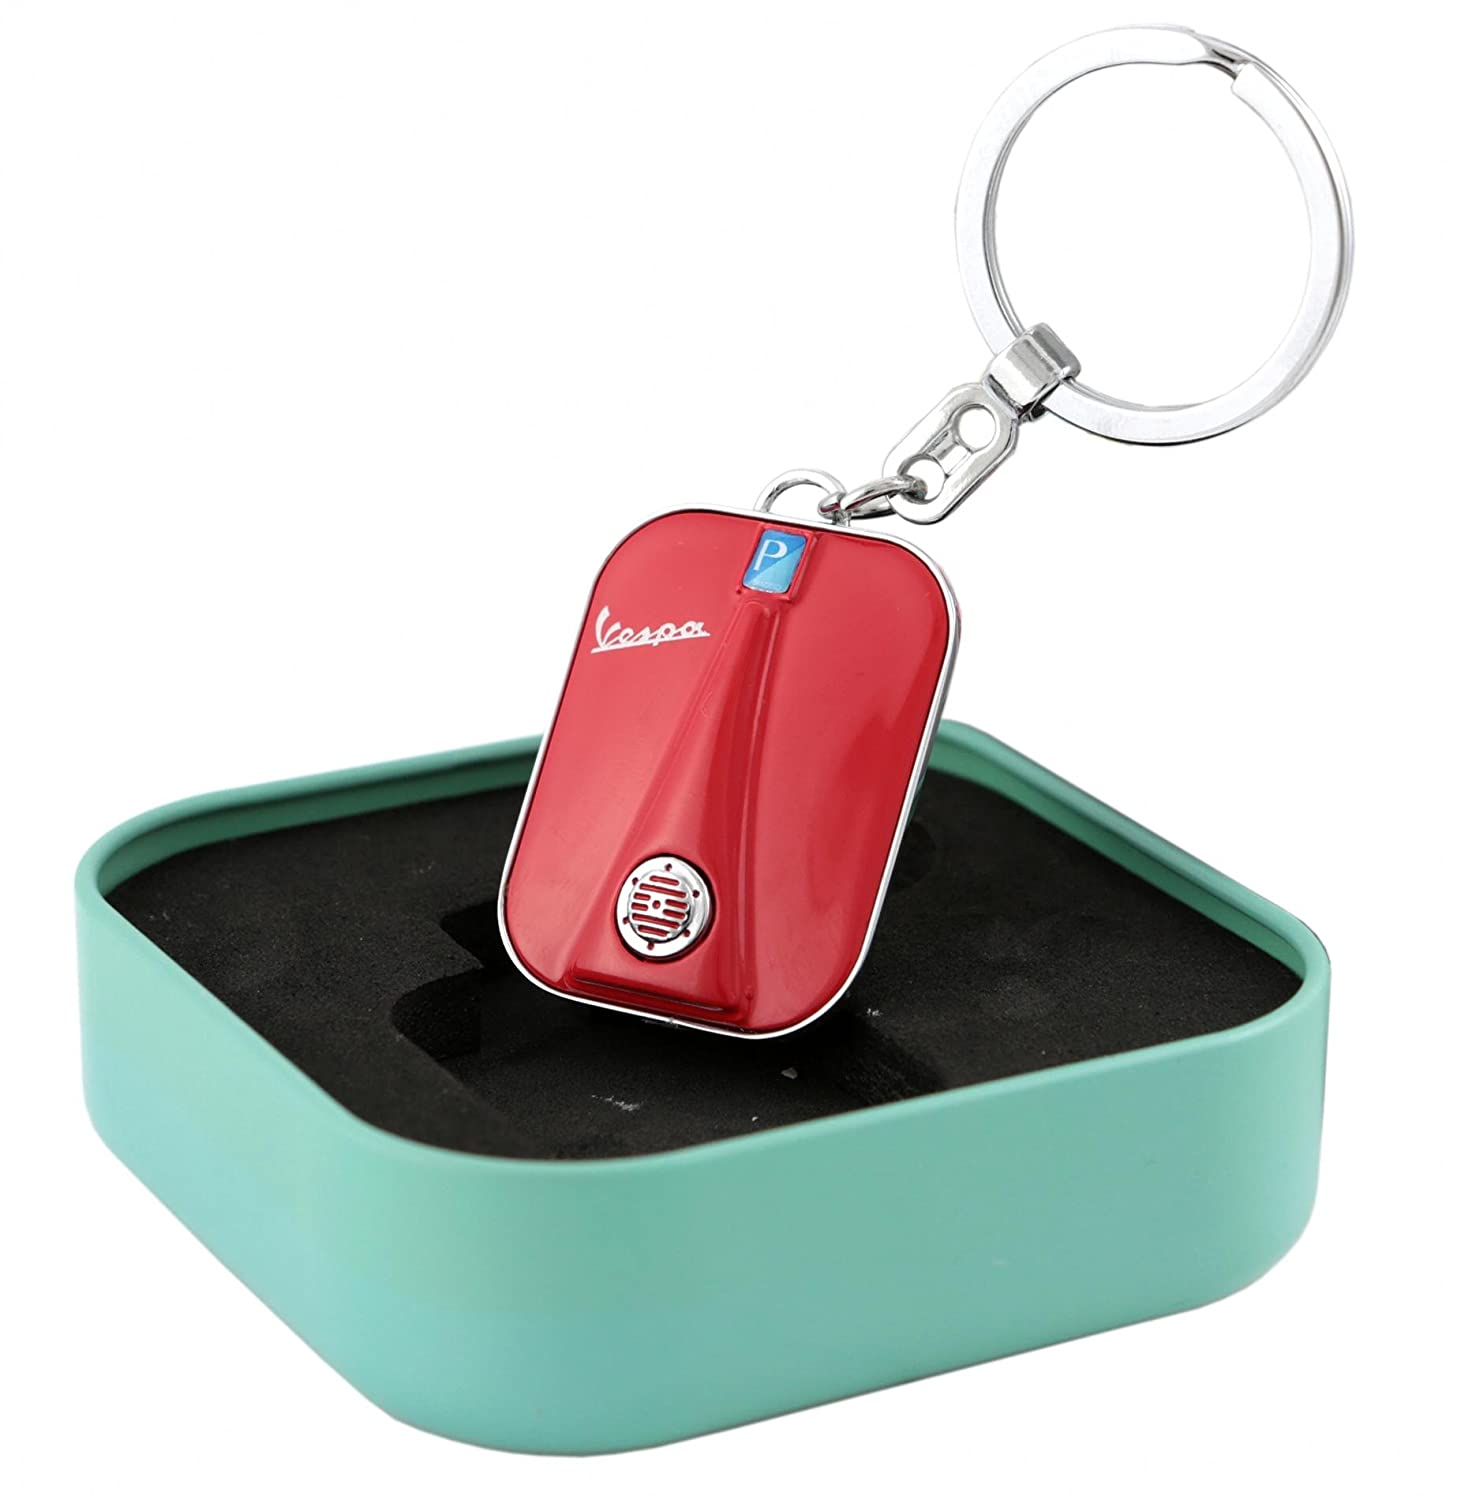 Amazon.com: forme Vespa Legshield Key Chain in Metal Box ...